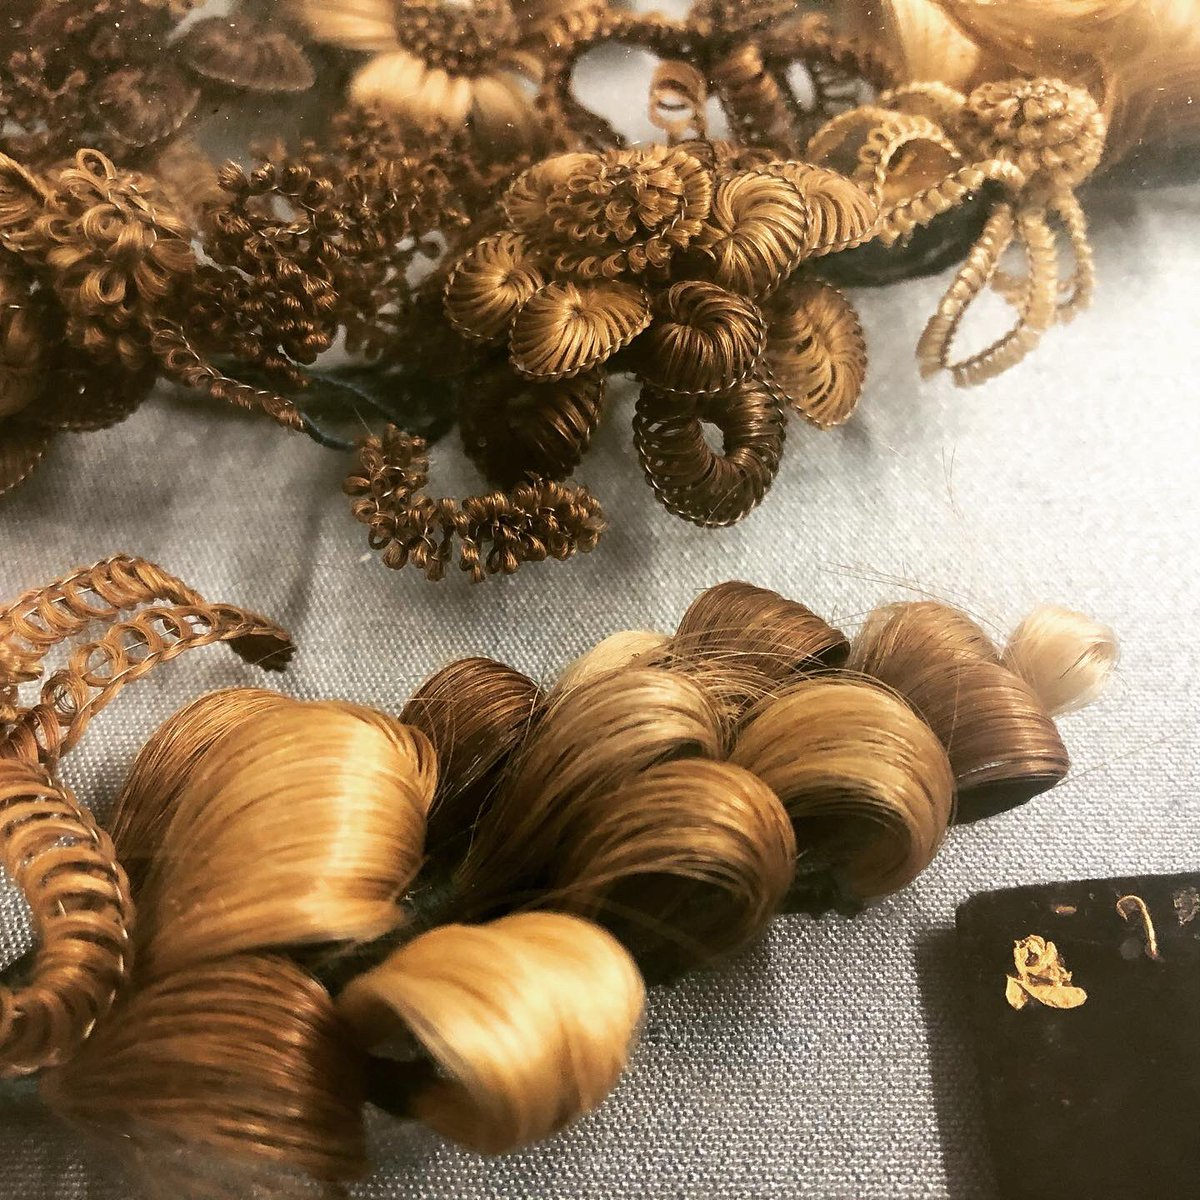 Yup. This is human hair art. 🤭 For #Victorians, this #hair was more than just art. This sort of art was used in mourning, taking hair from deceased family members and creating beautiful and intricate #art pieces to remember and honor loved ones.  #weirdhistory #strangebuttrue